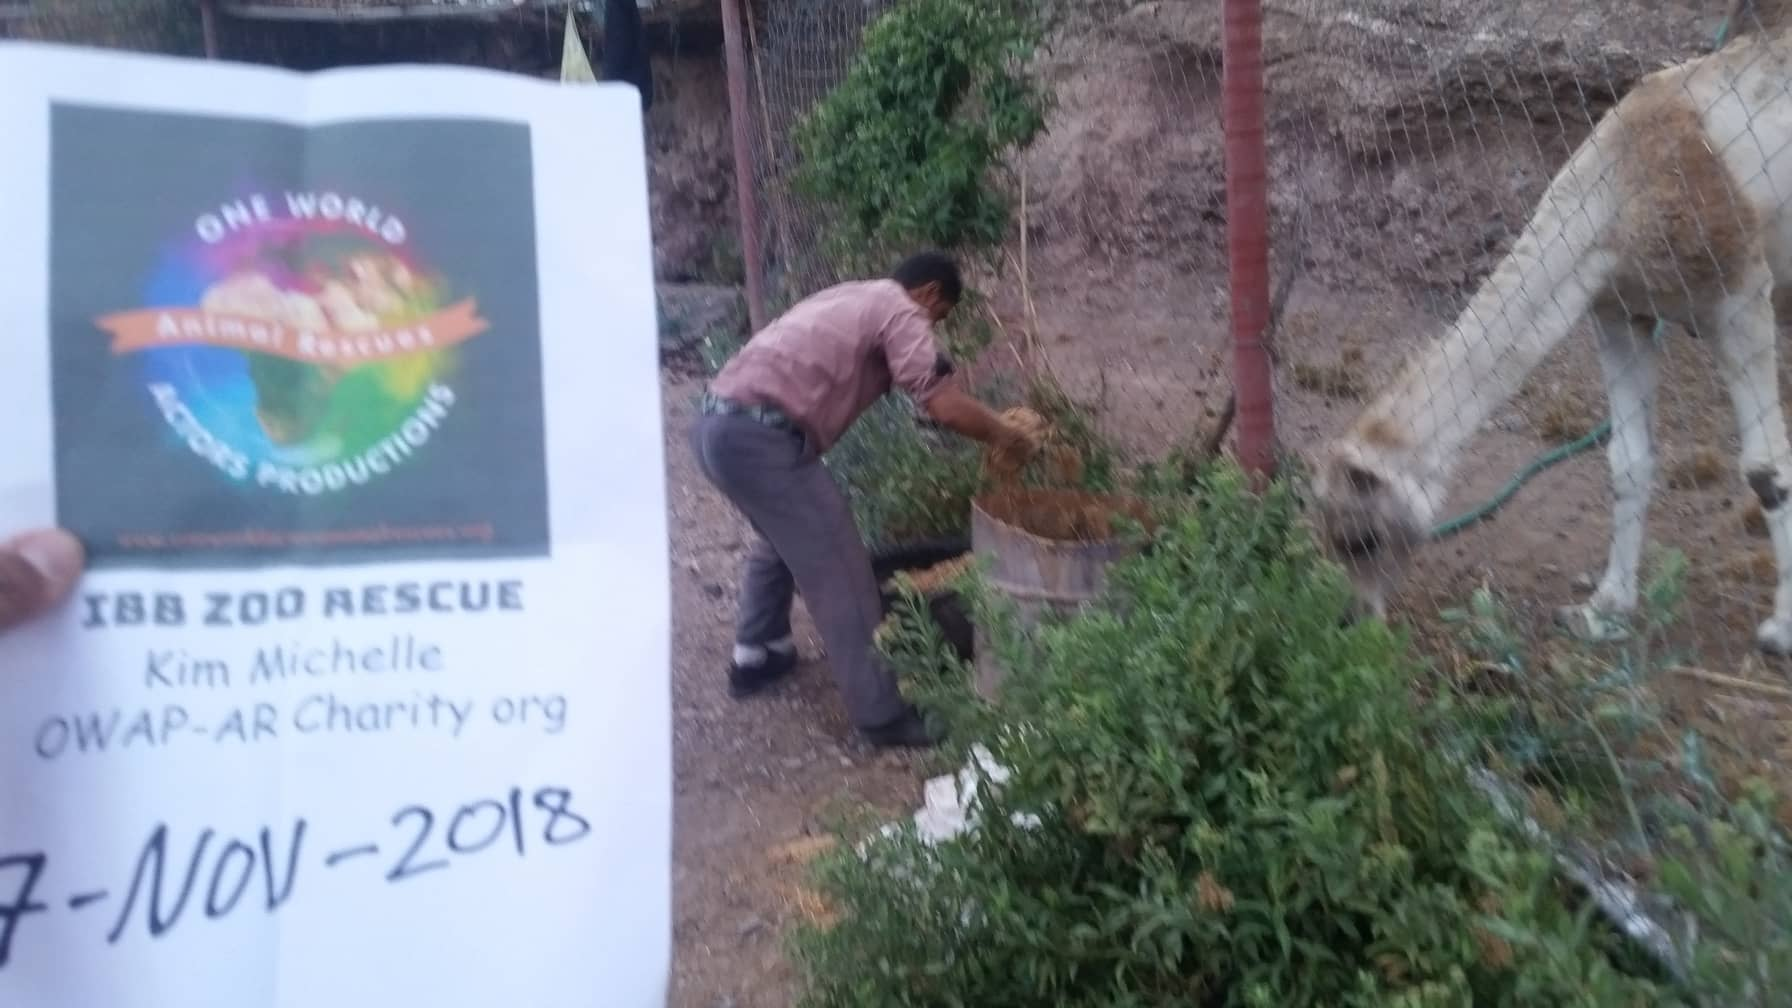 ibb zoo special feed for the horses  found and delivered by hisham 17 NOV 2018 OWAP-AR sign.jpg